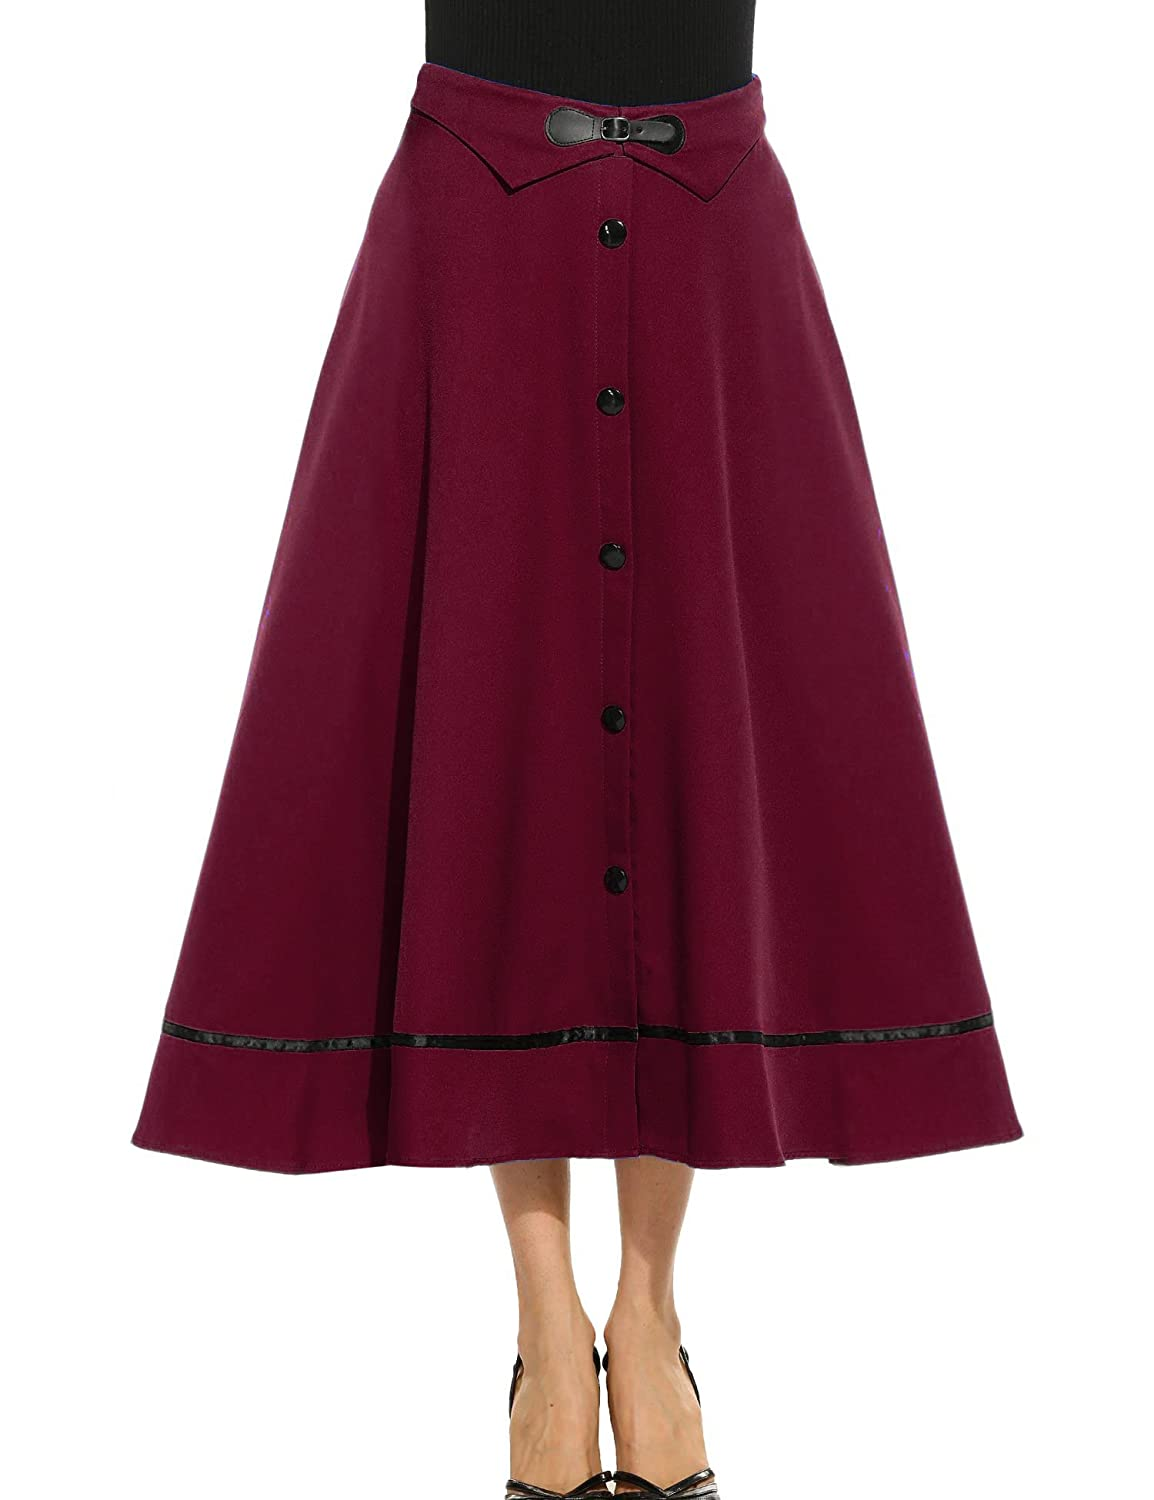 1900 -1910s Edwardian Fashion, Clothing & Costumes ANGVNS Womens Vintage High Waist Button Down Pleated Swing Skirt $18.99 AT vintagedancer.com